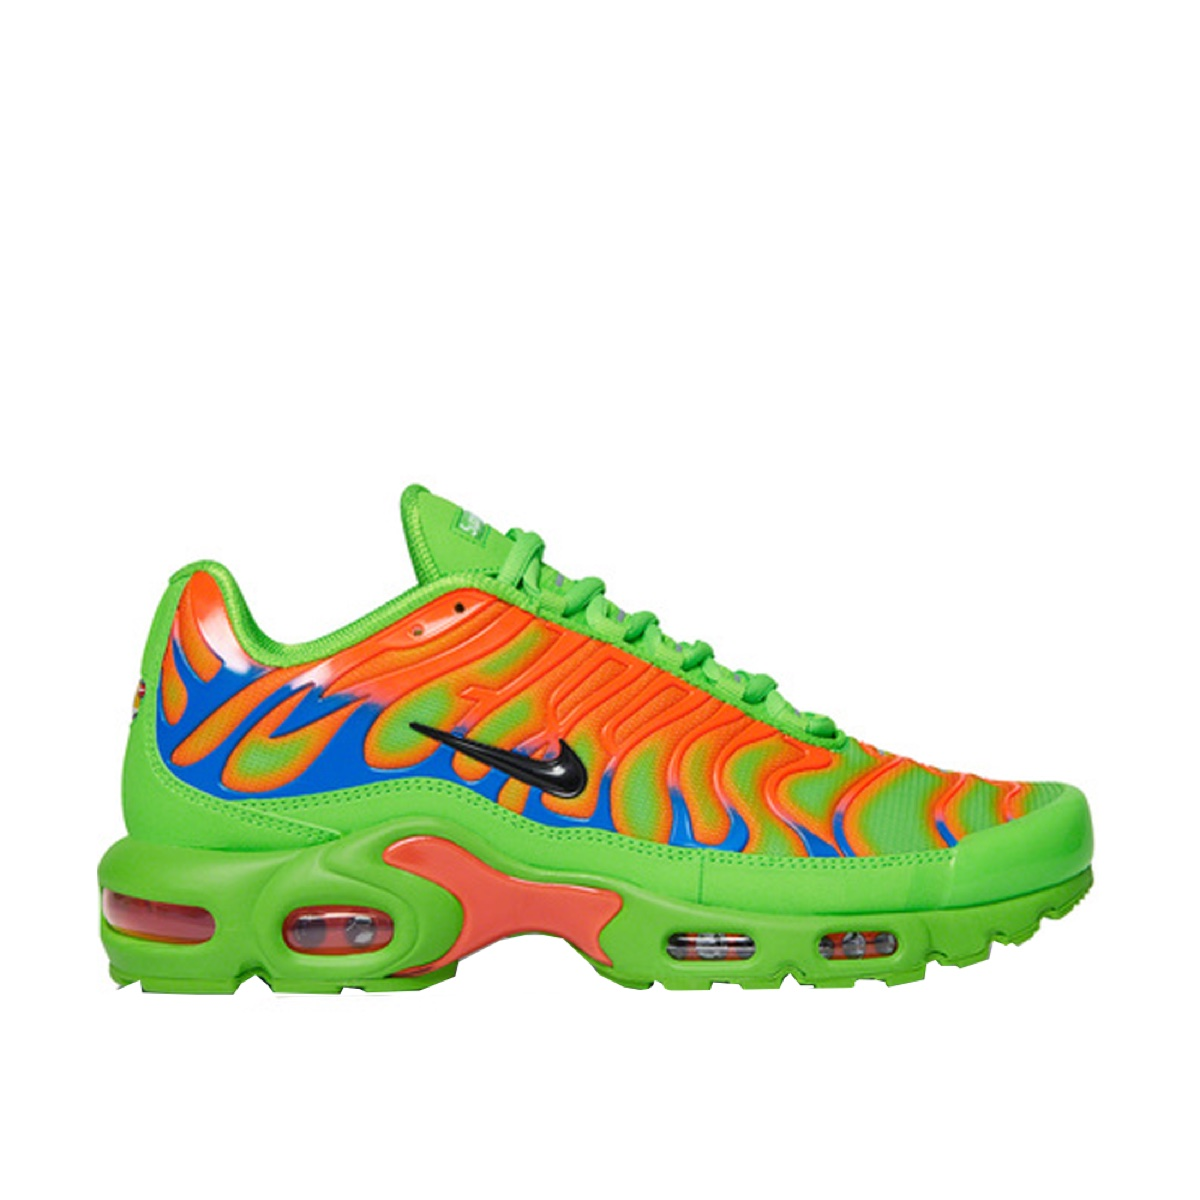 Supreme Nike Air Max Plus Green